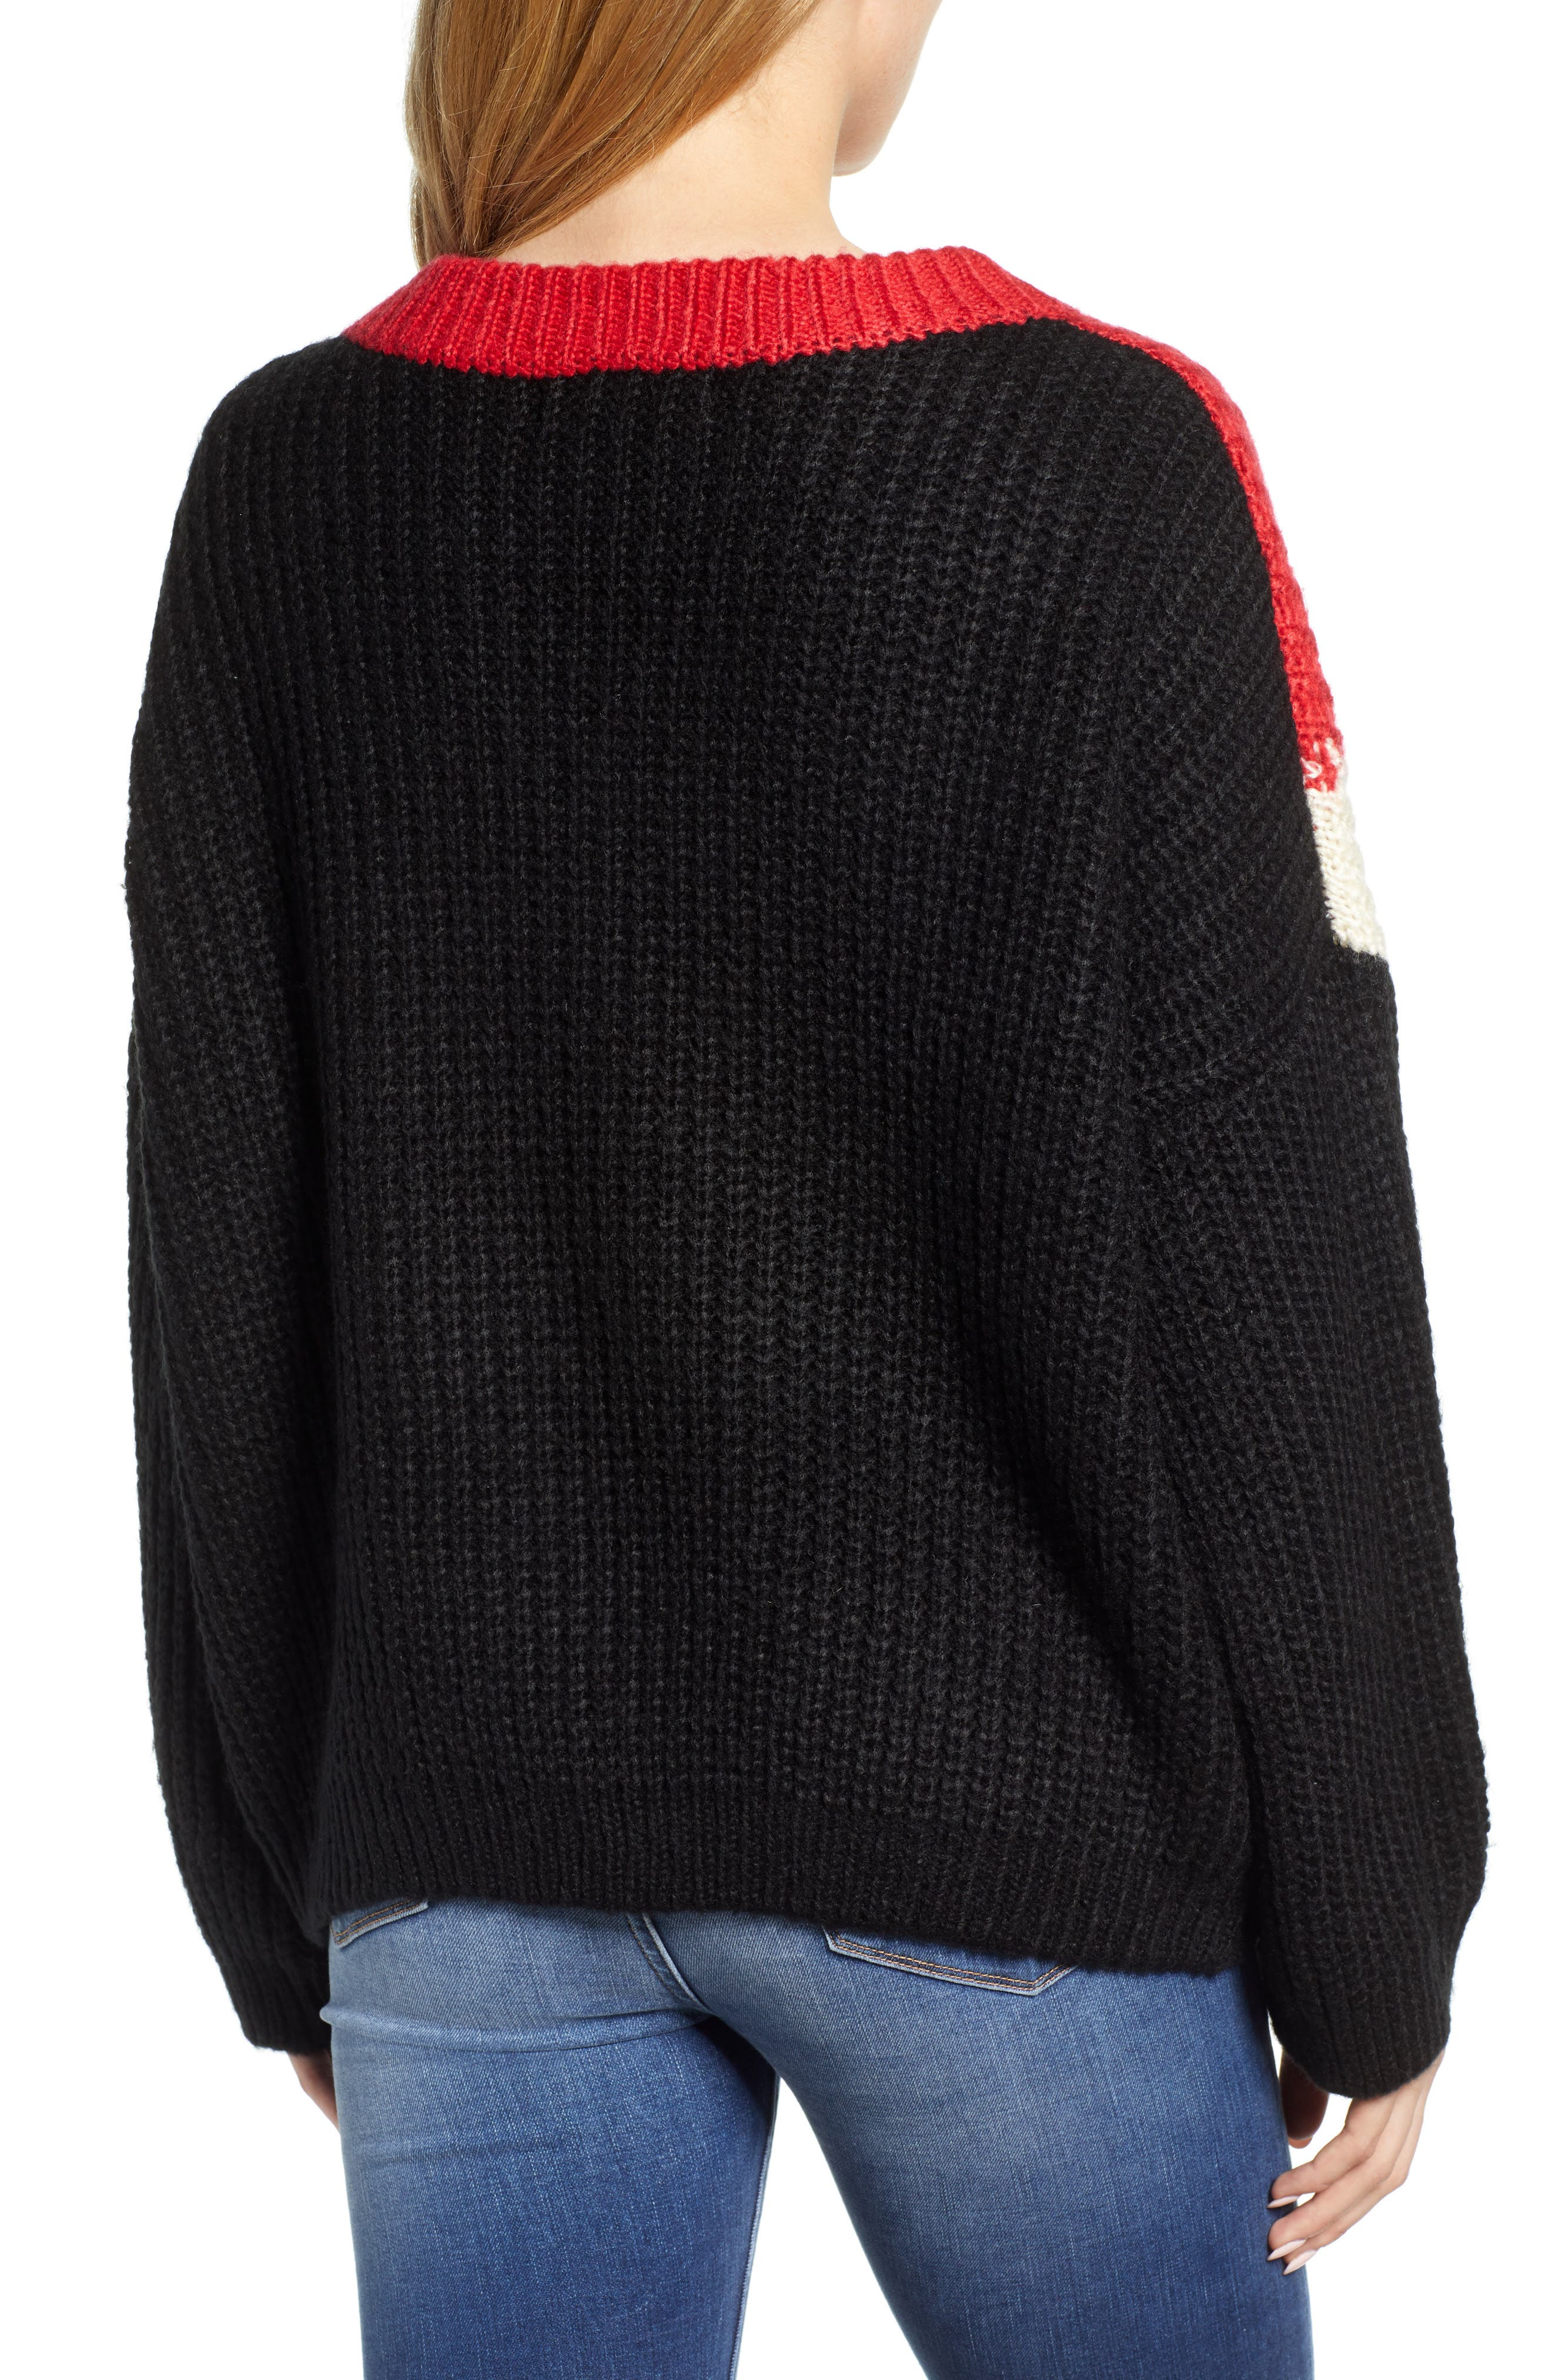 BISHOP + YOUNG,                             The Anthem Colorblock Shaker Sweater,                             Alternate thumbnail 2, color,                             BLACK